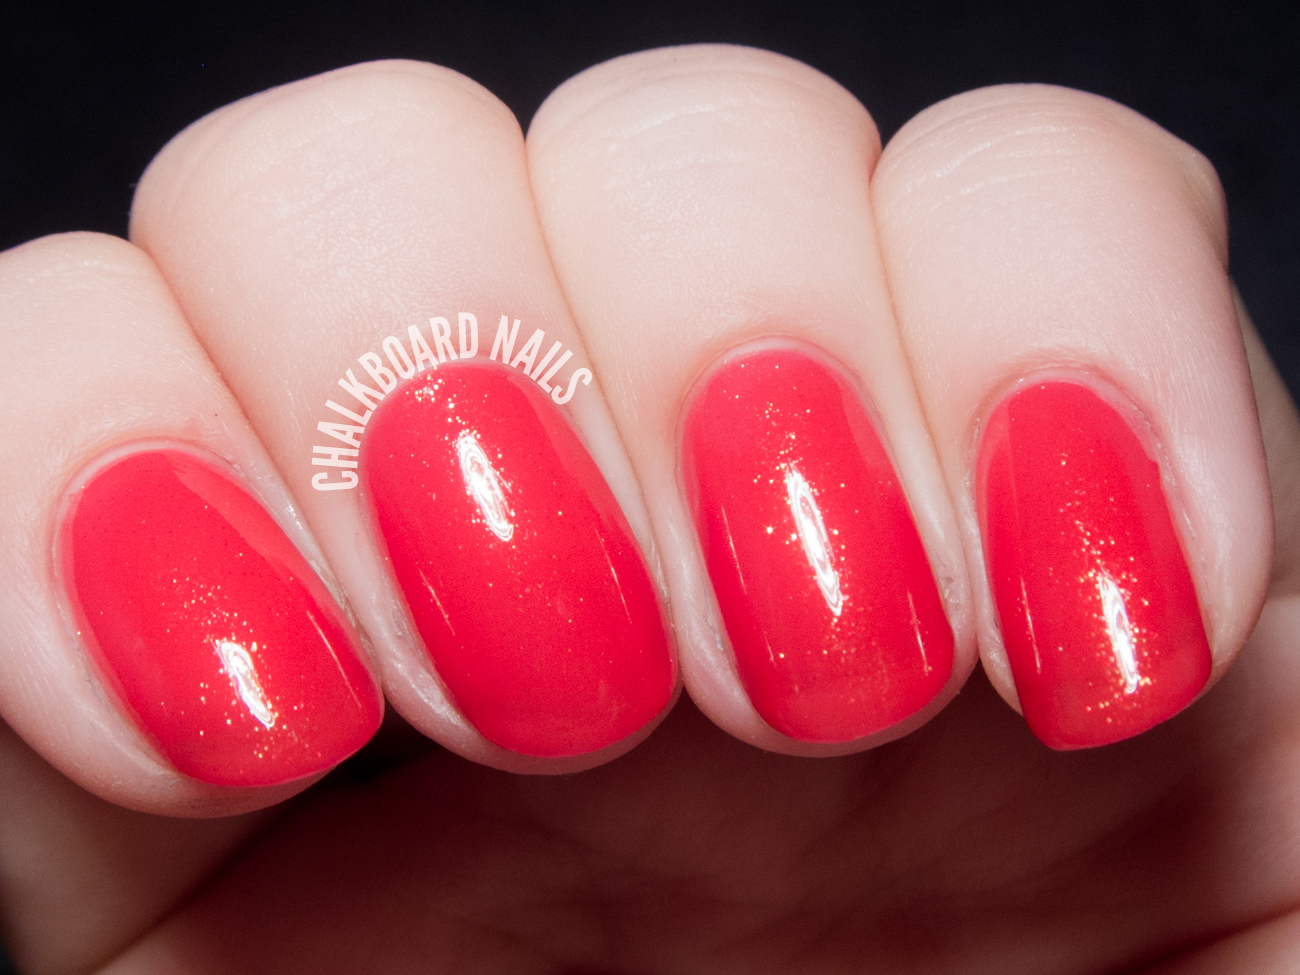 Contrary Polish Pink Grapefruit via @chalkboardnails